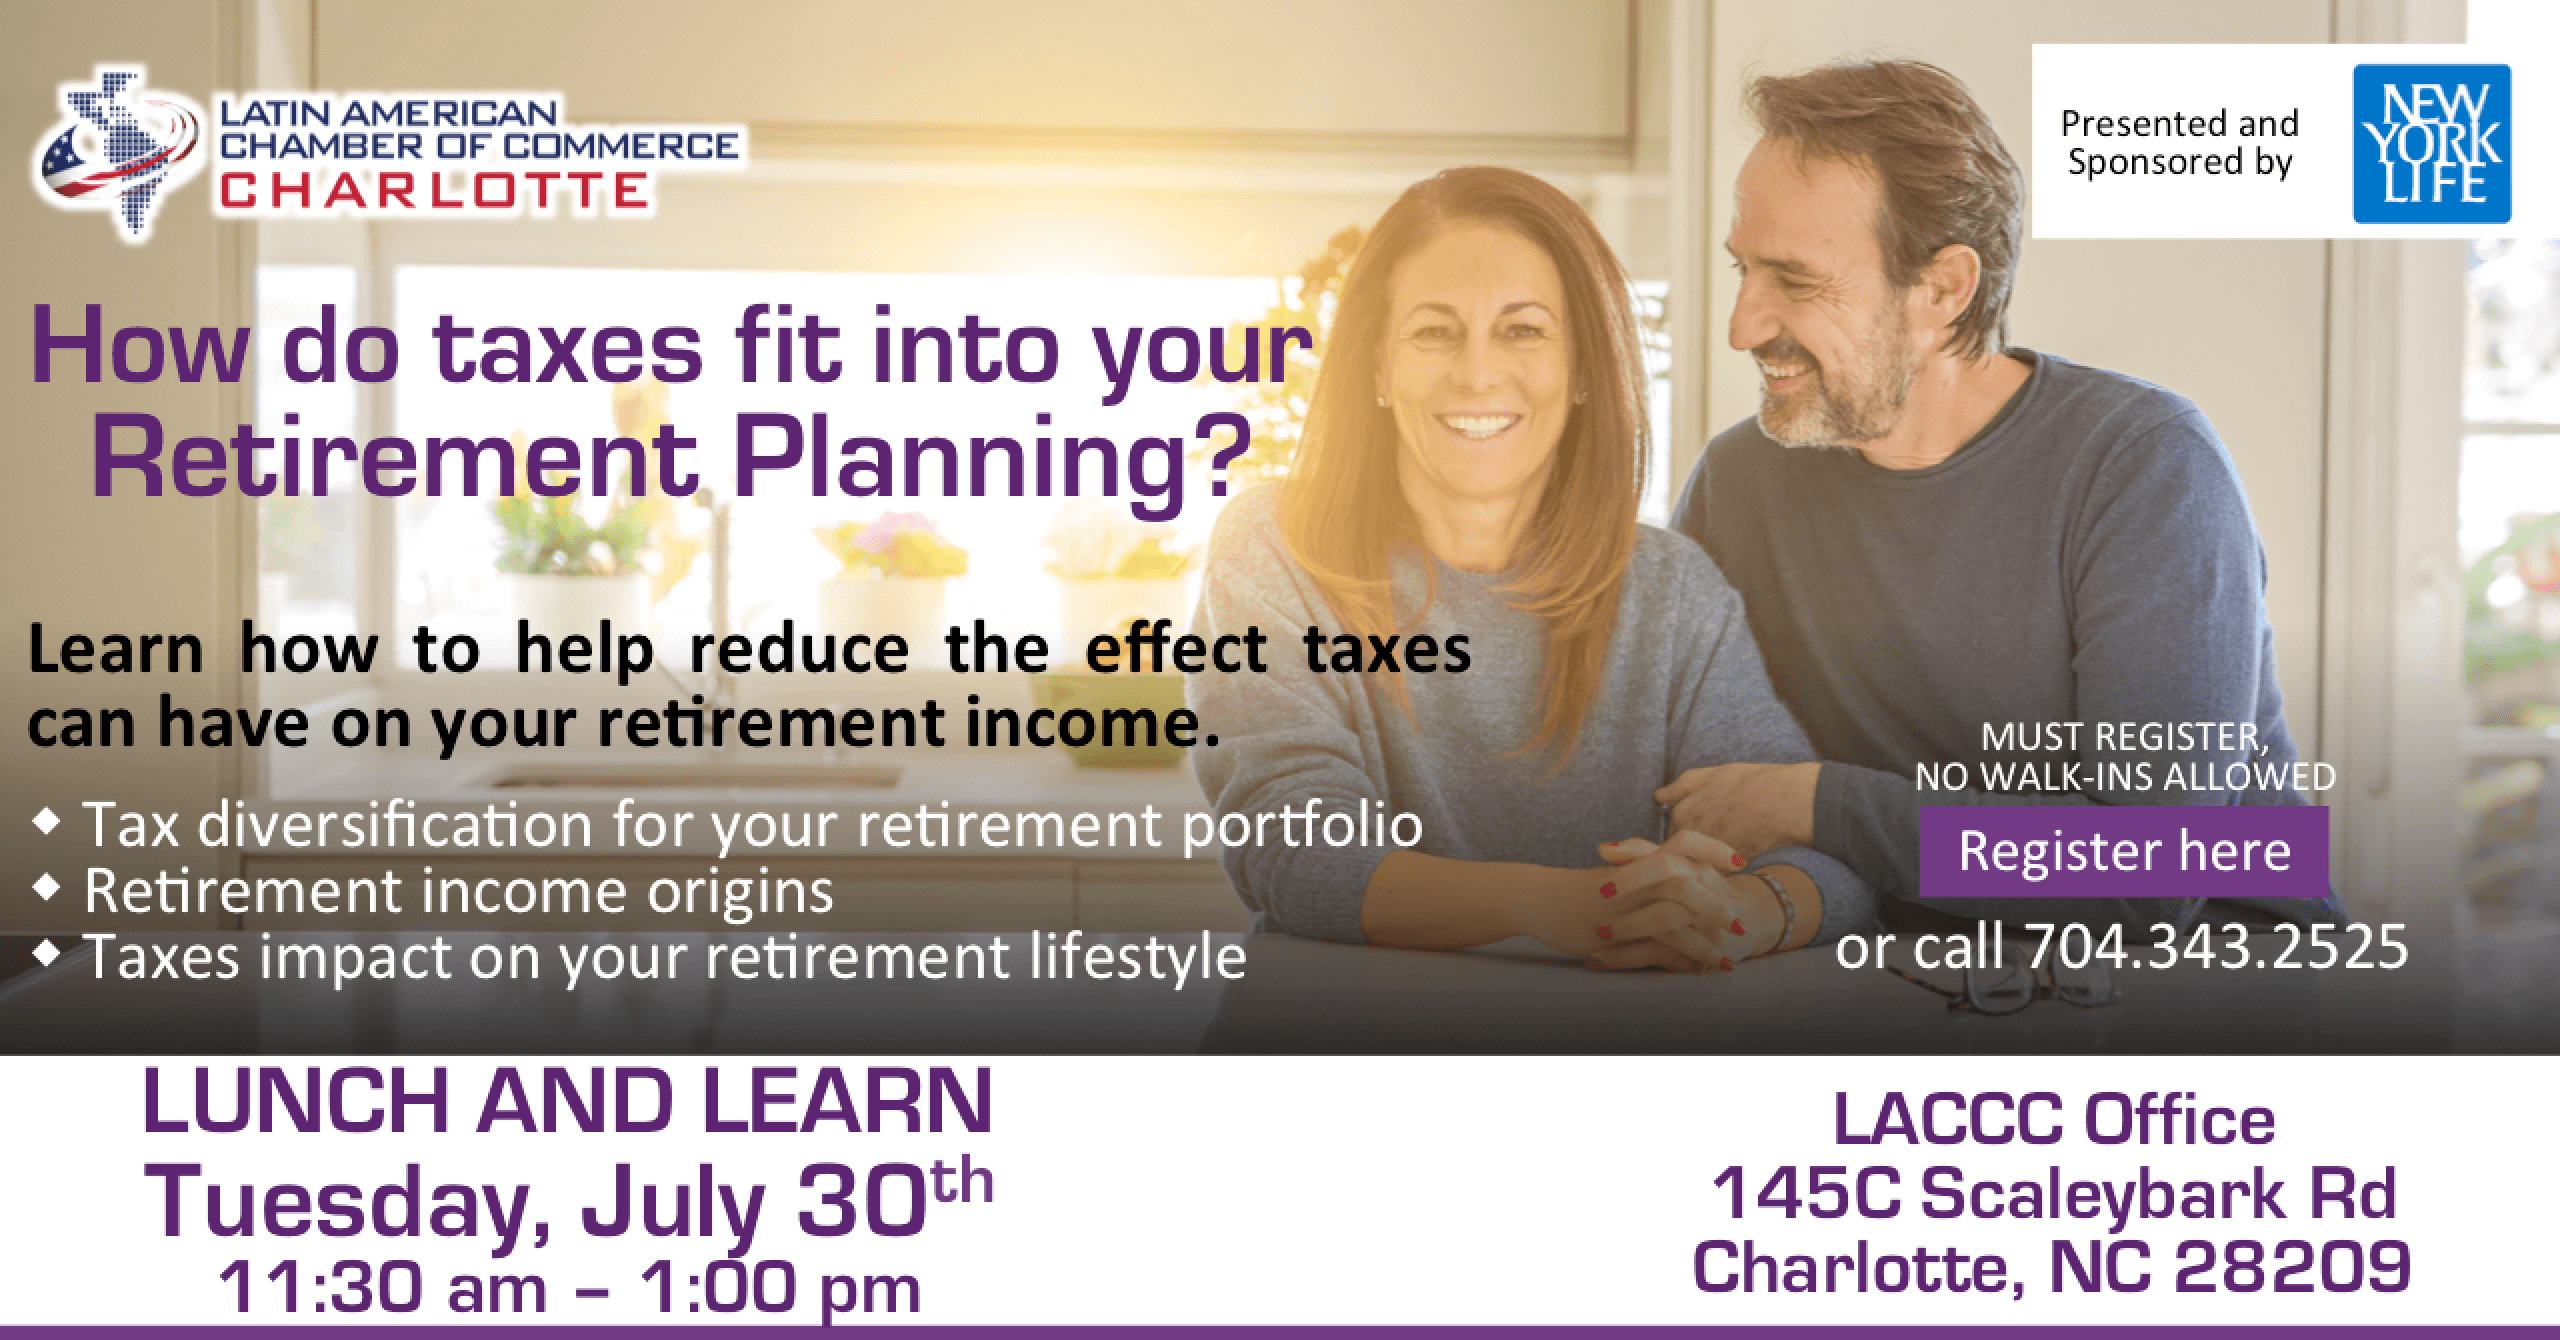 The Latin American Chamber of Commerce of Charlotte - Lunch & Learn How do taxes fit into your retirement planning? By New York Life @ LACCC Office | Charlotte | North Carolina | United States